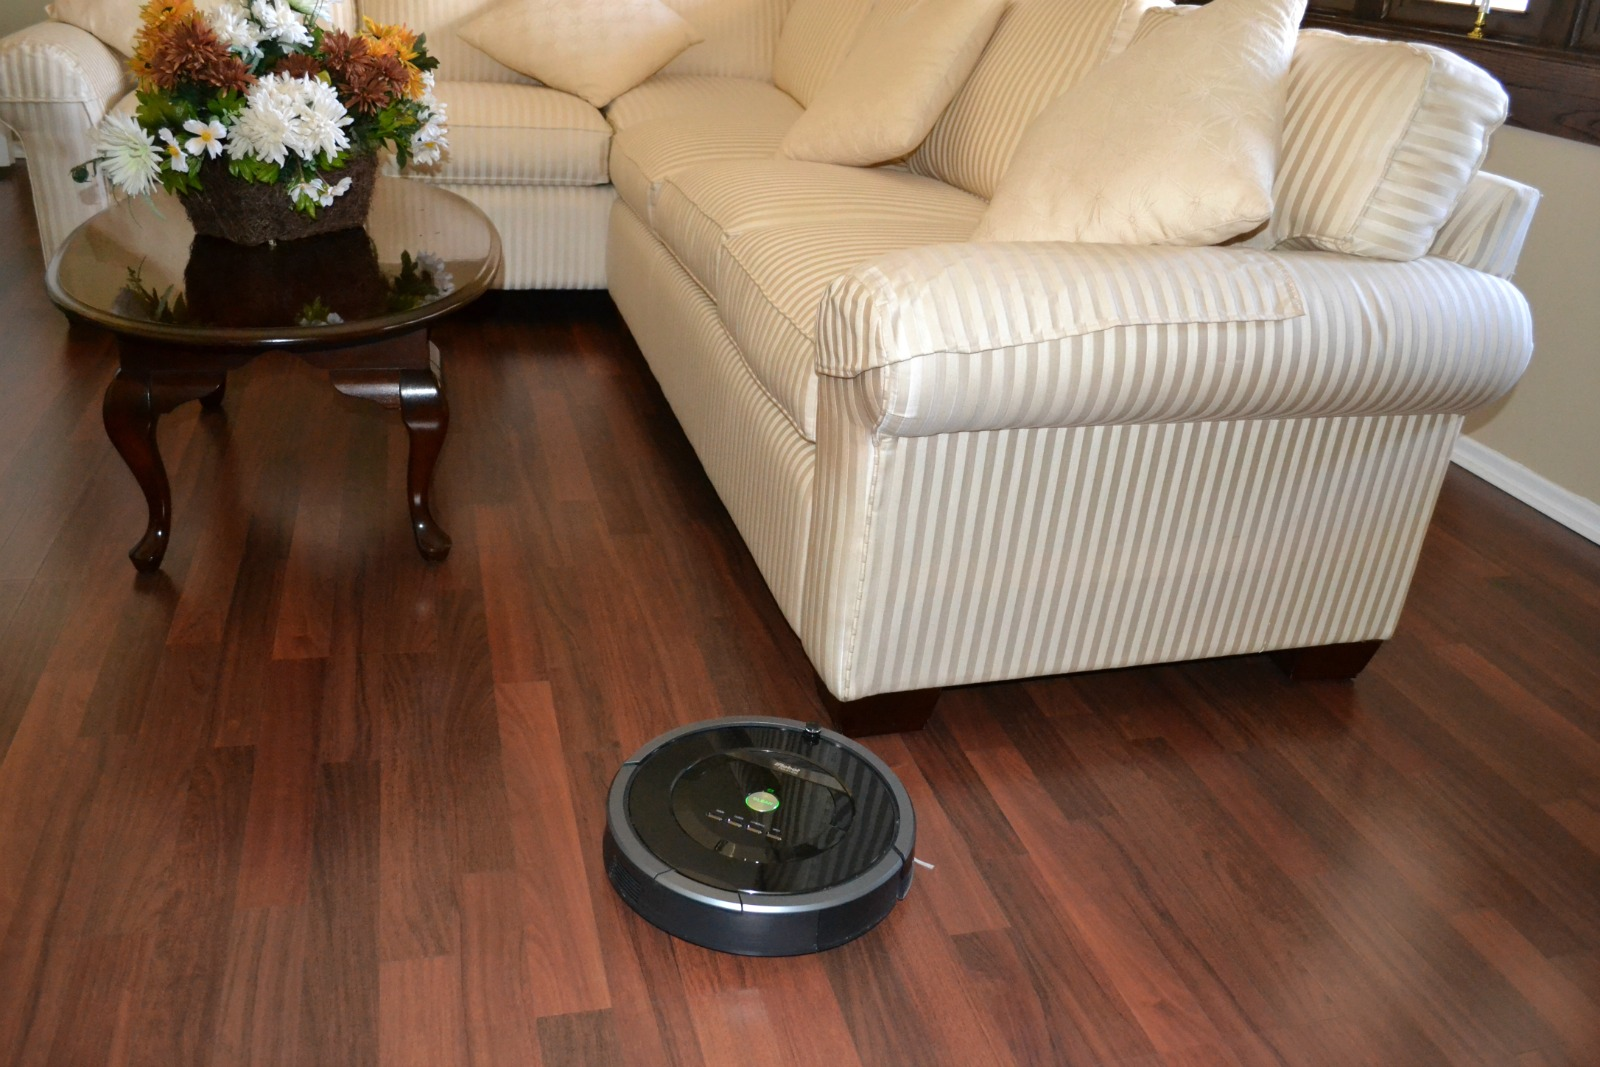 product-review-irobot-roomba-880